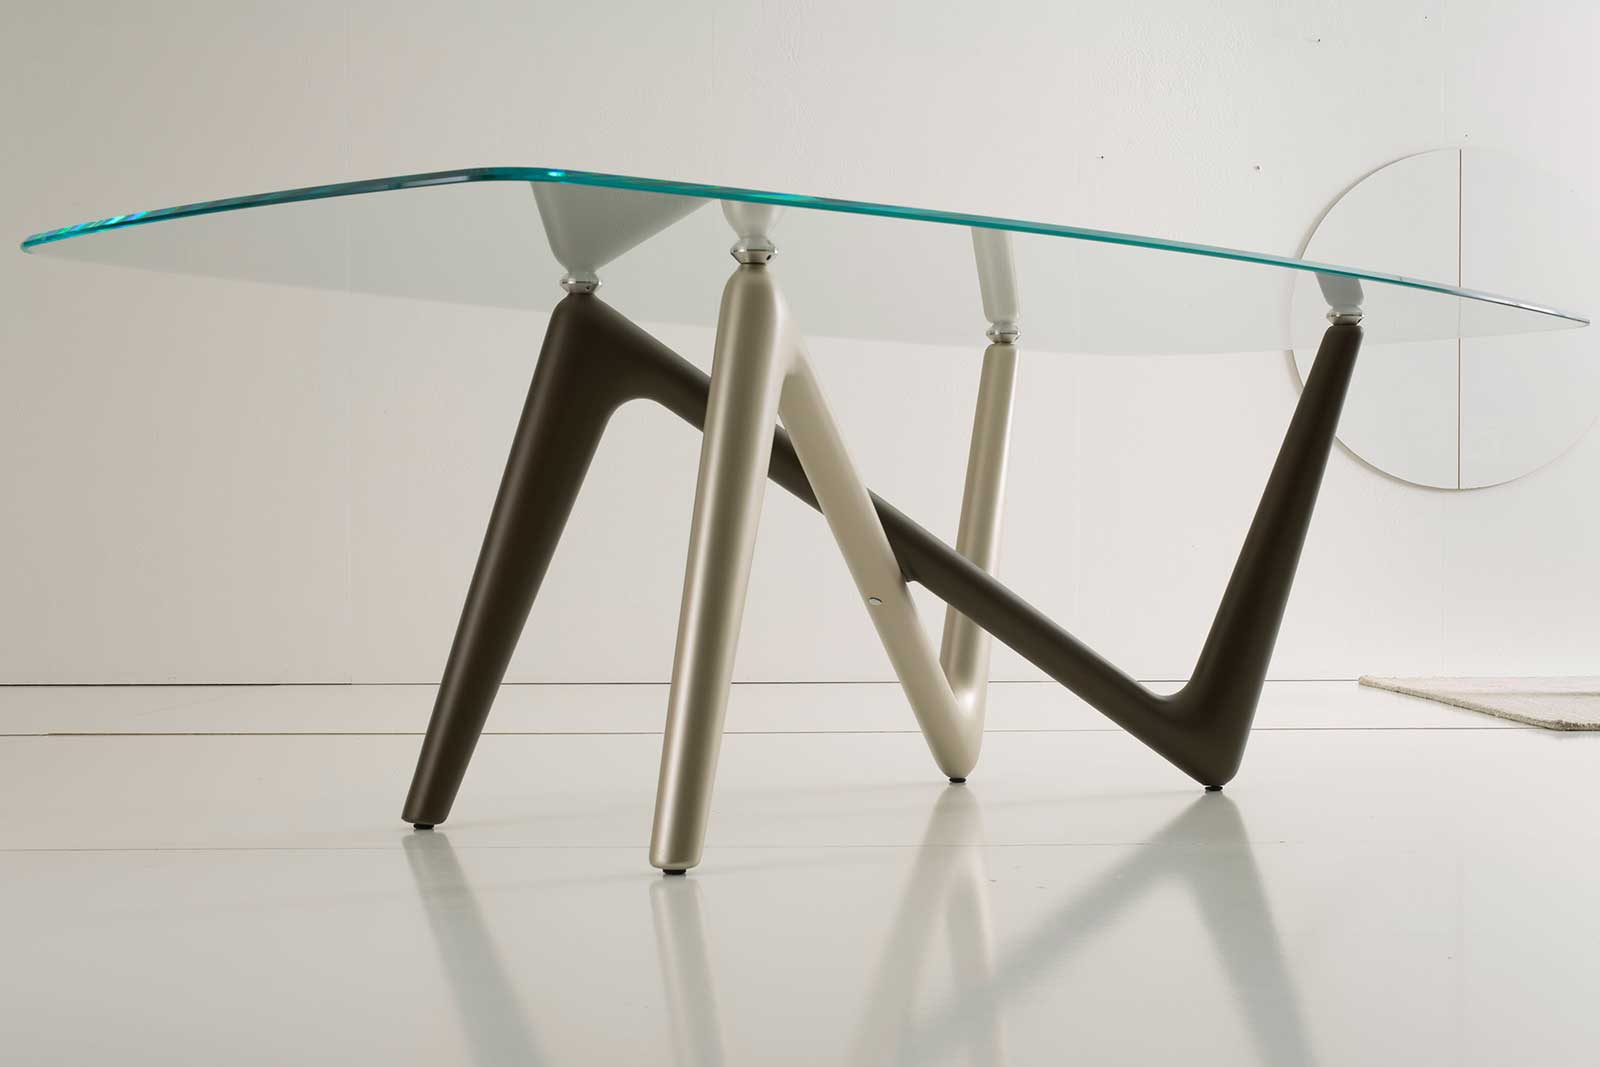 Unusual legs intersection in bronze and titanium colour and extra clear safety glass cm. 110 x 220 or 120 x 240. Edge luxurious original rectangular table.